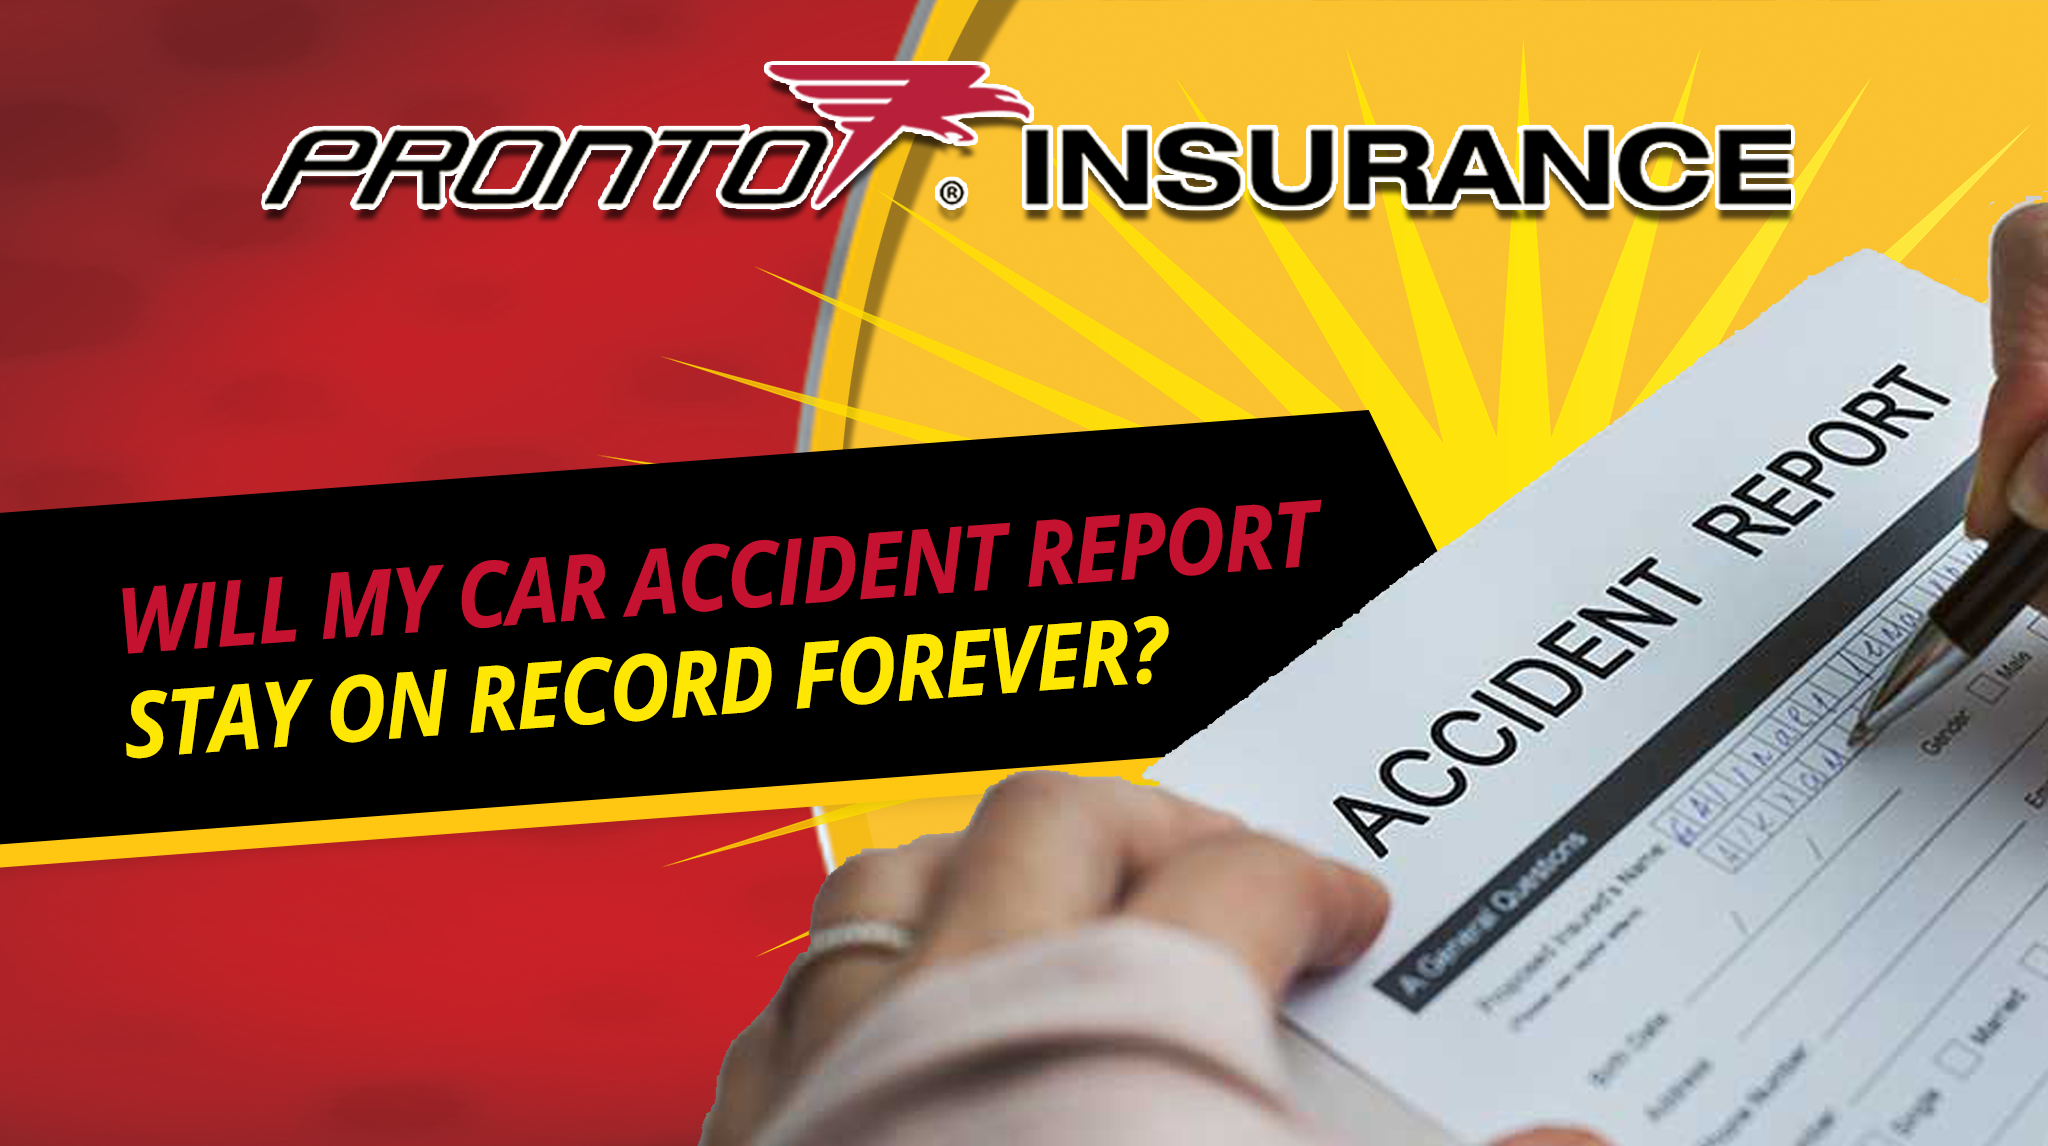 Will My Car Accident Report Stay on Record Forever?